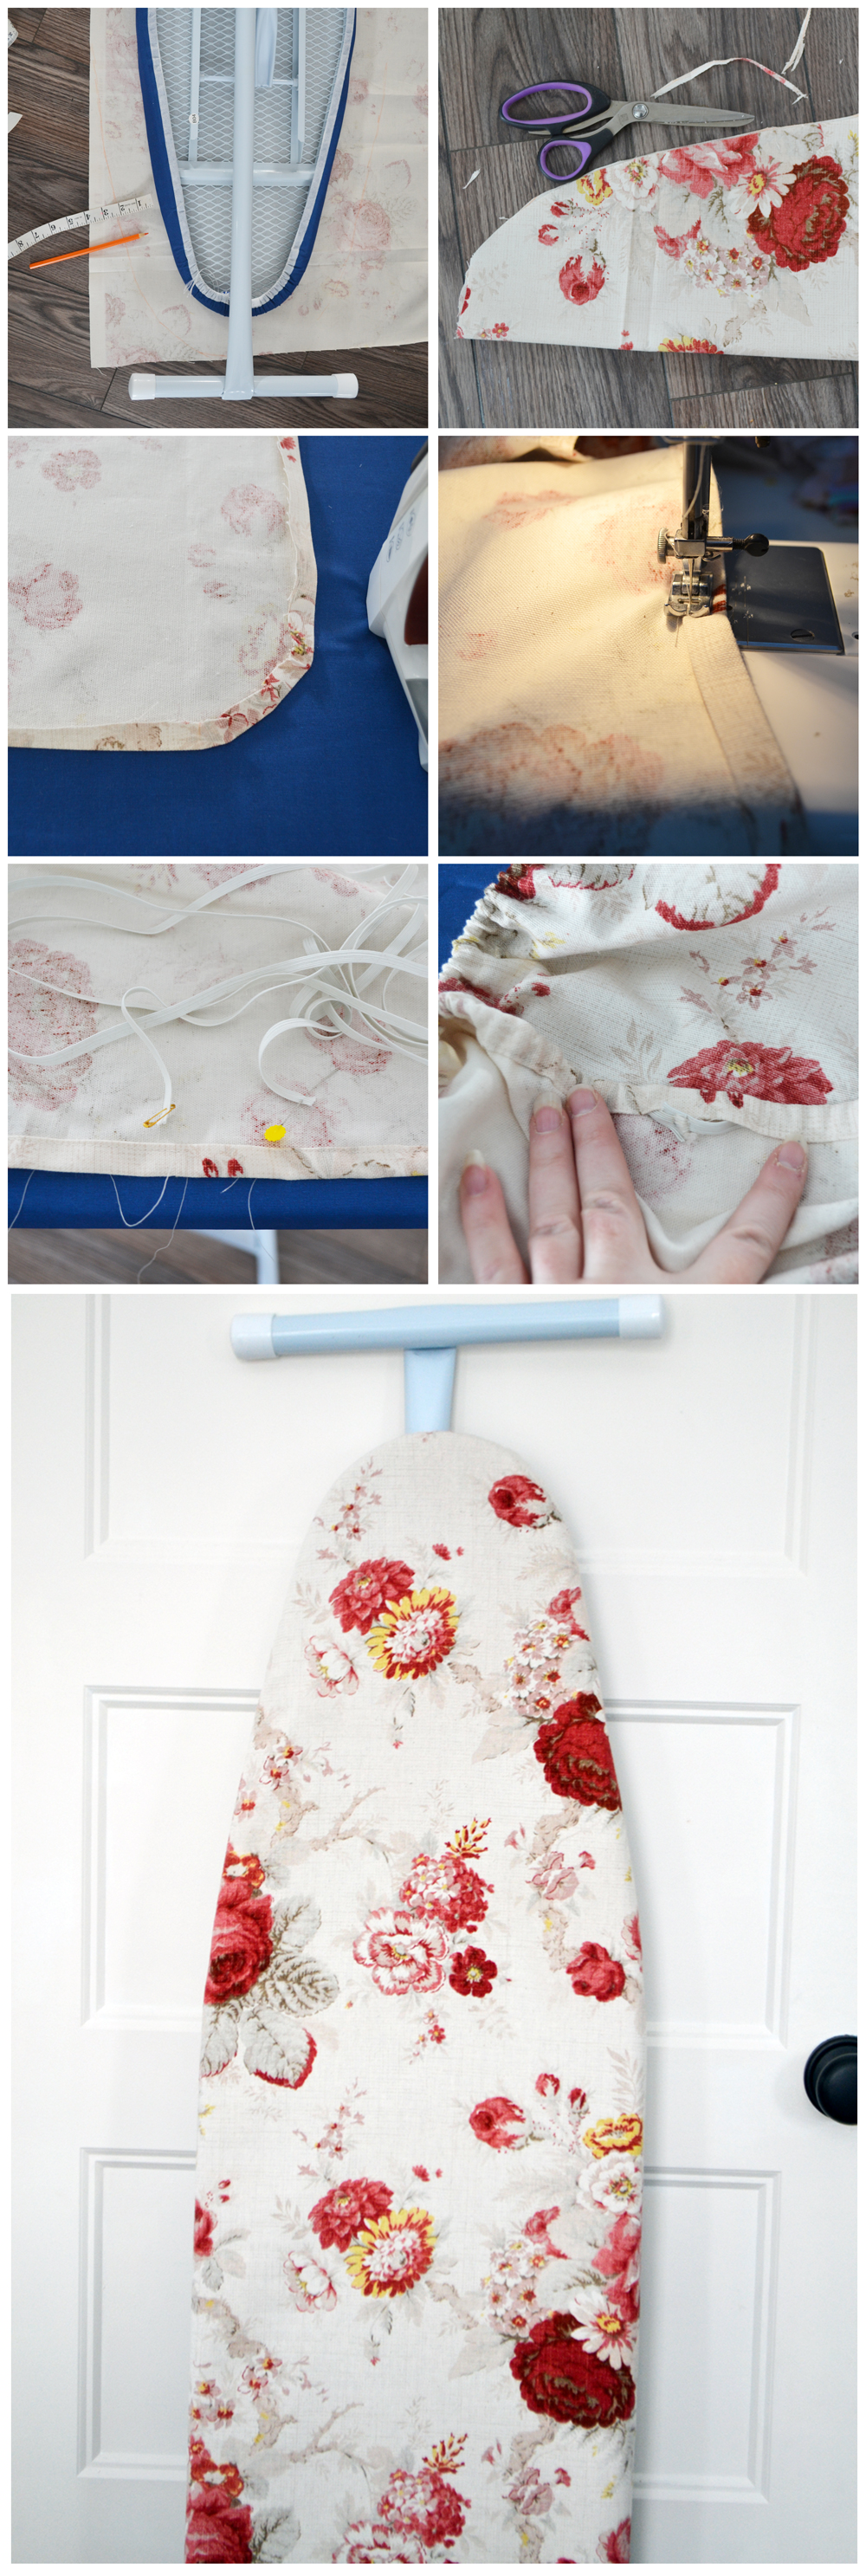 How to make an easy DIY floral ironing board tutorial